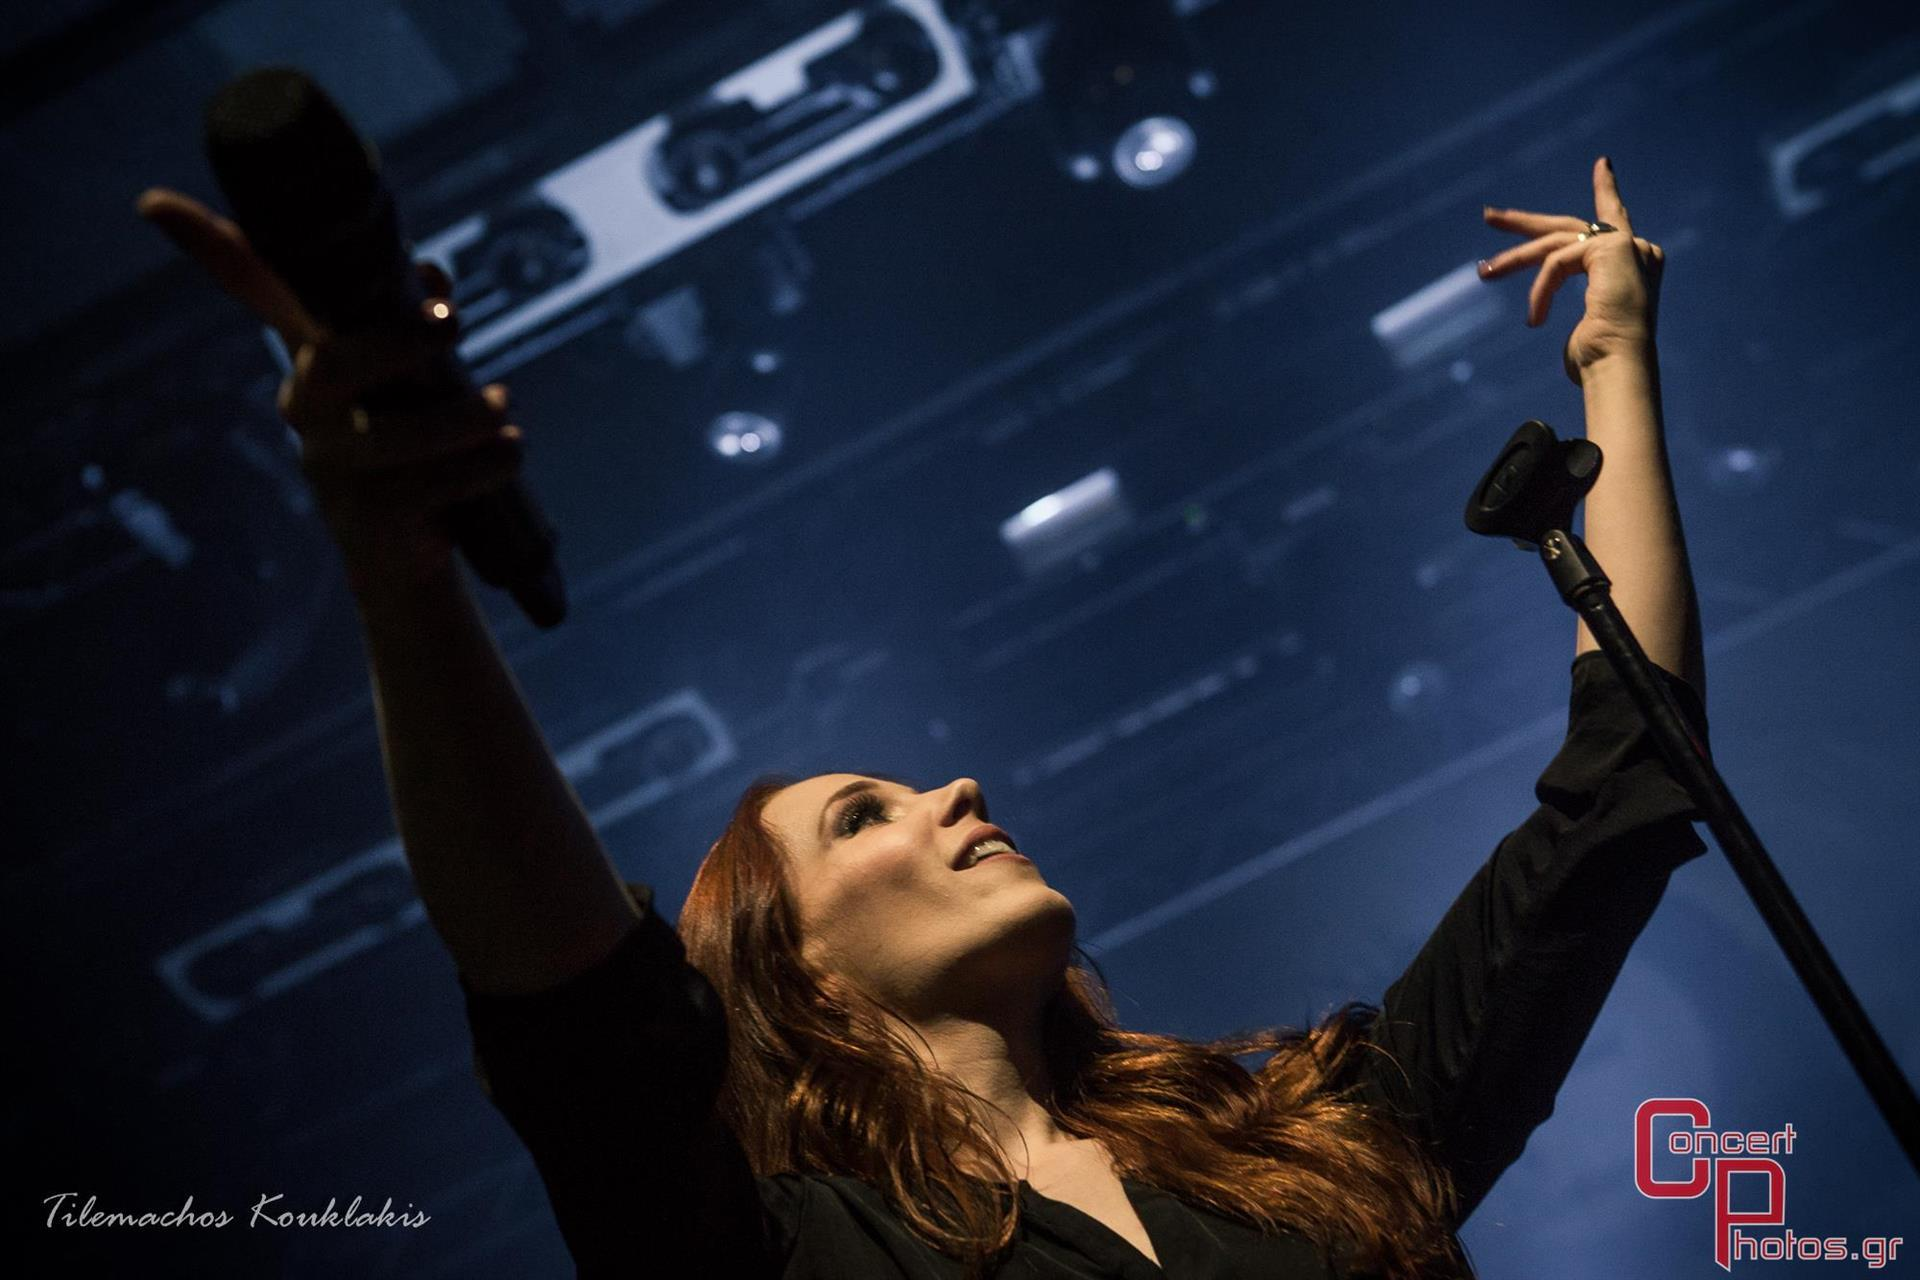 EPICA Jaded Star Fuzz Club-EPICA Jaded Star Fuzz Club photographer:  - Epica_14